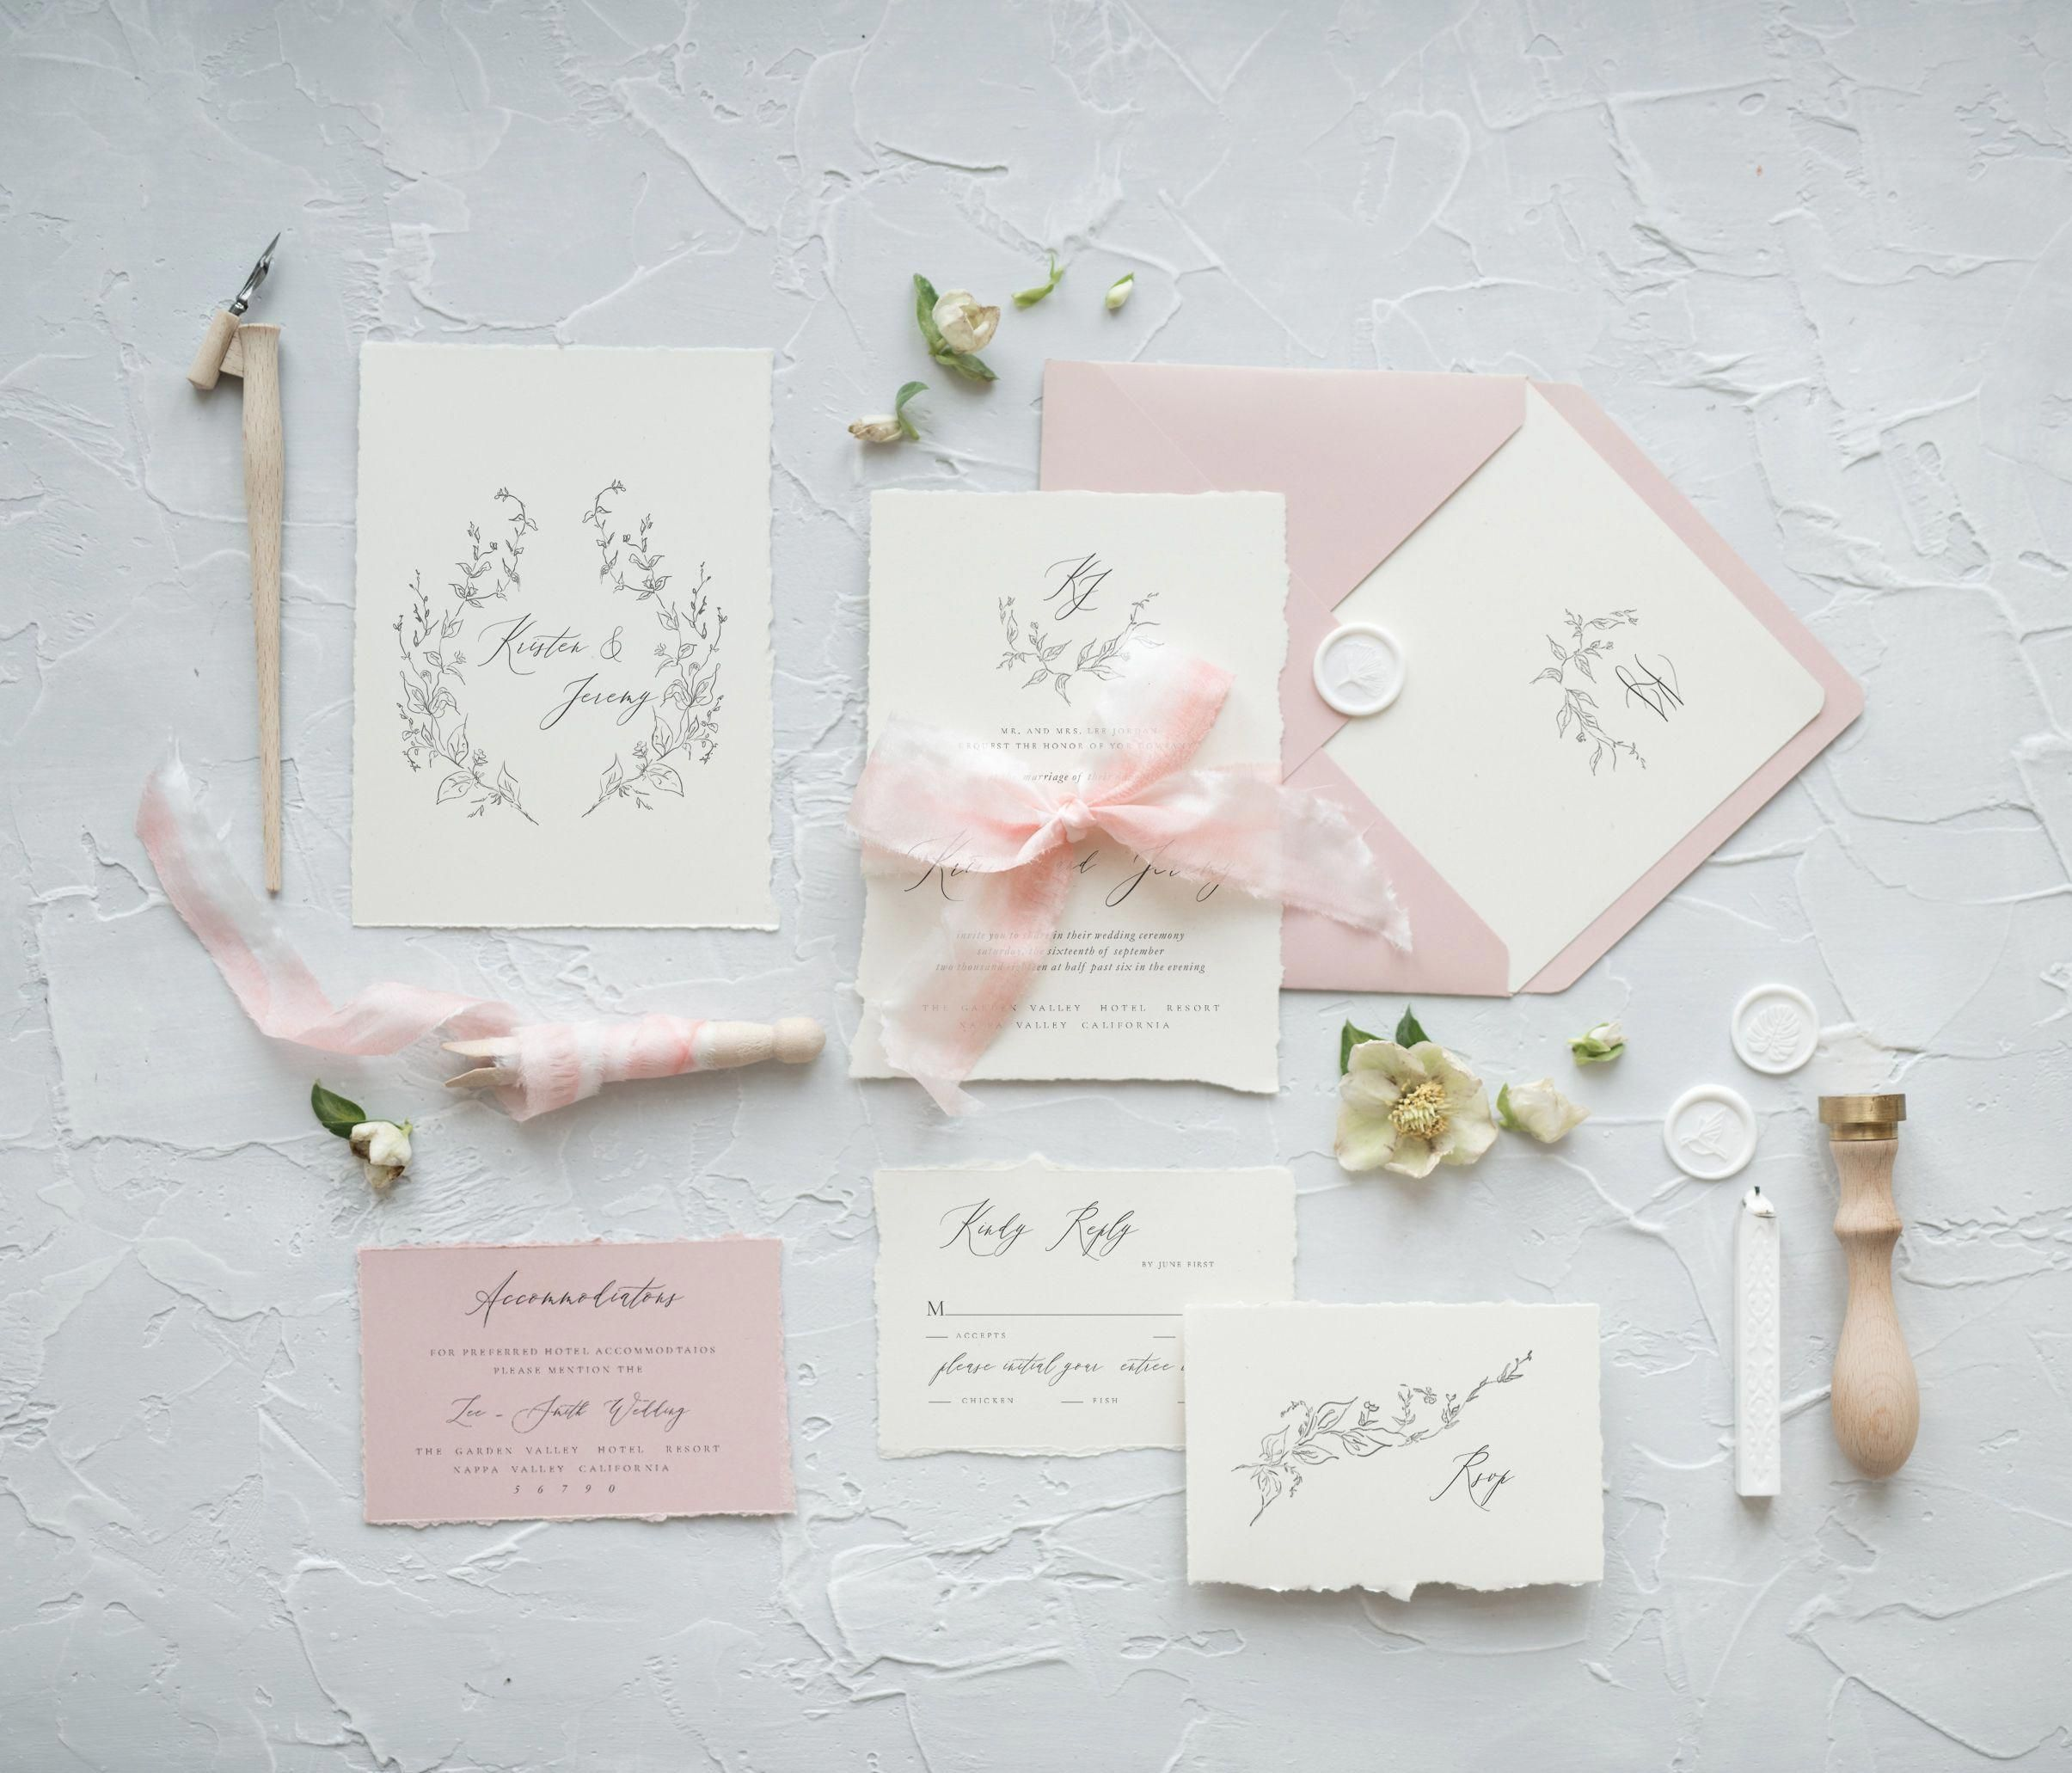 Completely Customized Handmade Wedding Invitations Let Our Designers Create Calligraphy Wedding Invitation Wedding Invitations Minimalist Wedding Invitations